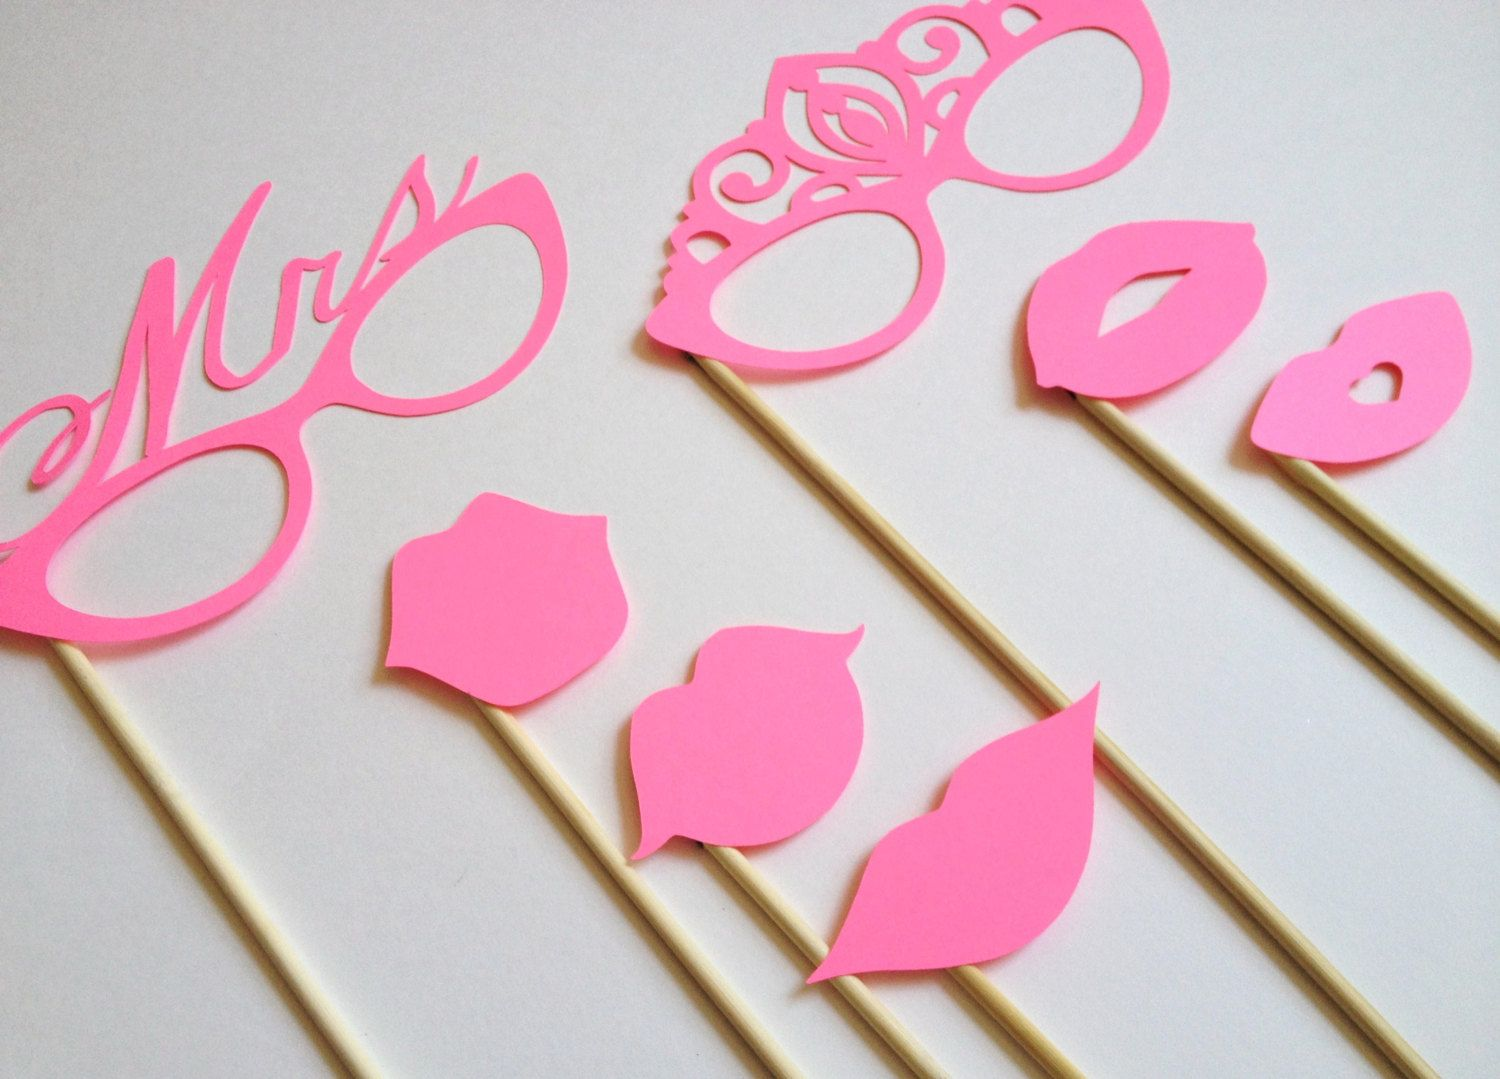 Wedding Photo Booth Props Team Bride 7 Pieces by CleverMarten, $5.00 ...